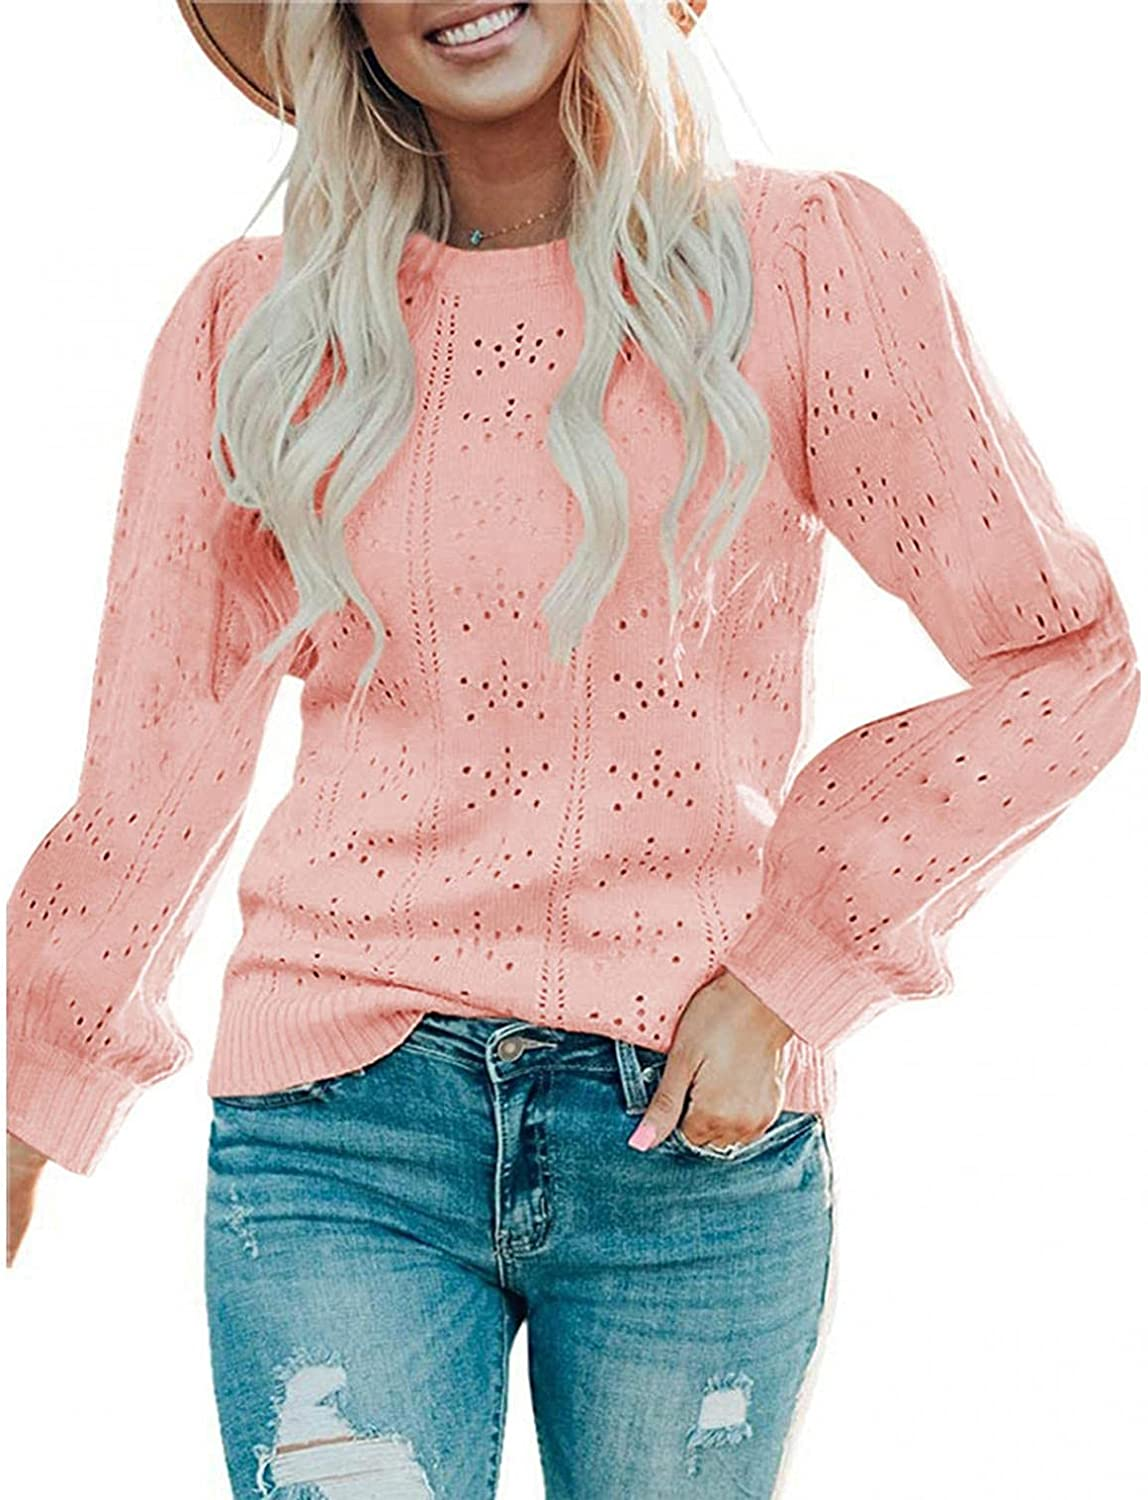 Forwelly Womens Puff Long Sleeve Sweaters Tops Fall Soft Crew Neck Dot Pullover Shirt Lightweight Knit Sweater Blouse